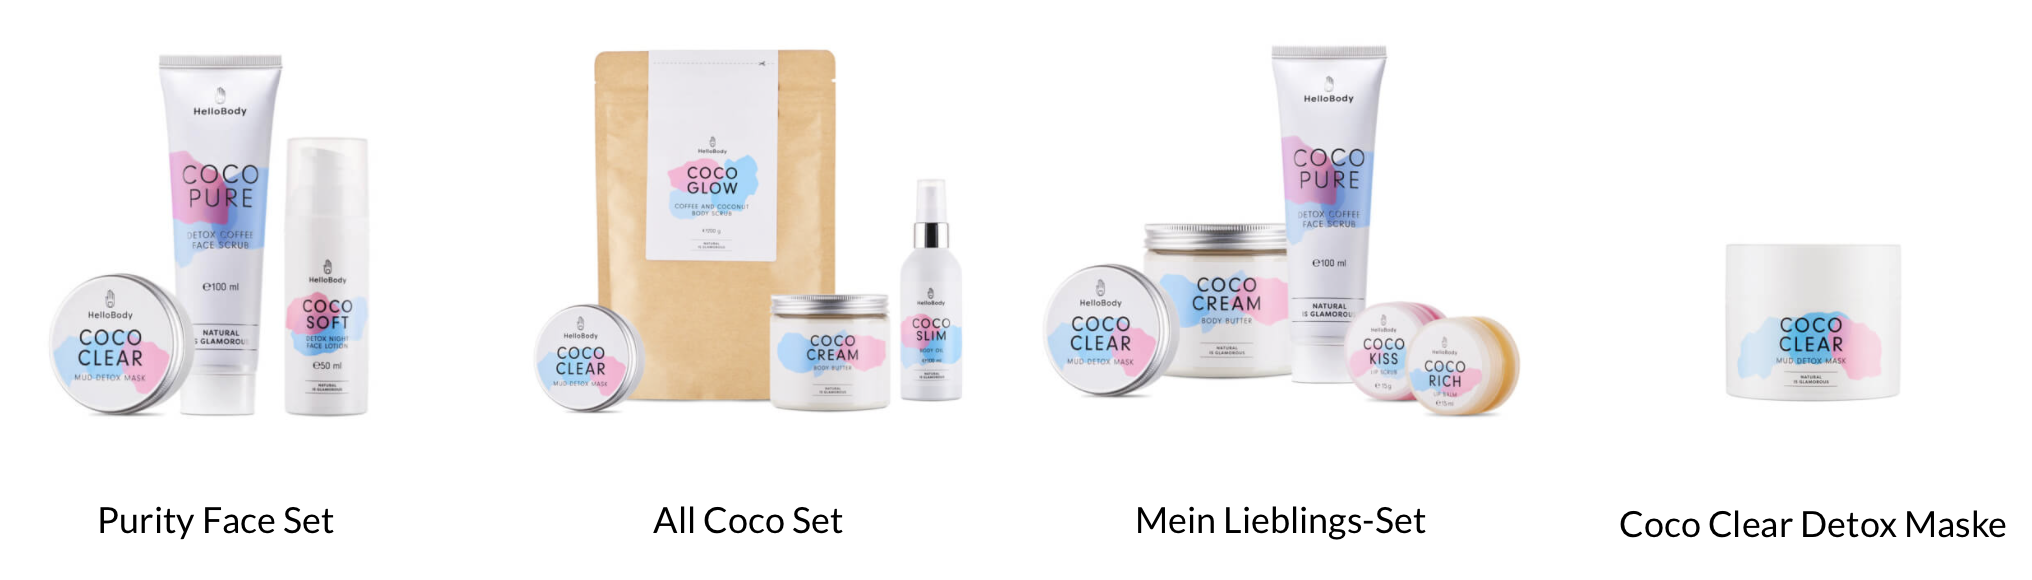 hello body-skin-skincare-pflege-body-body care-lauralamode-beauty-beautyblogger-berlin-munich-deutschland